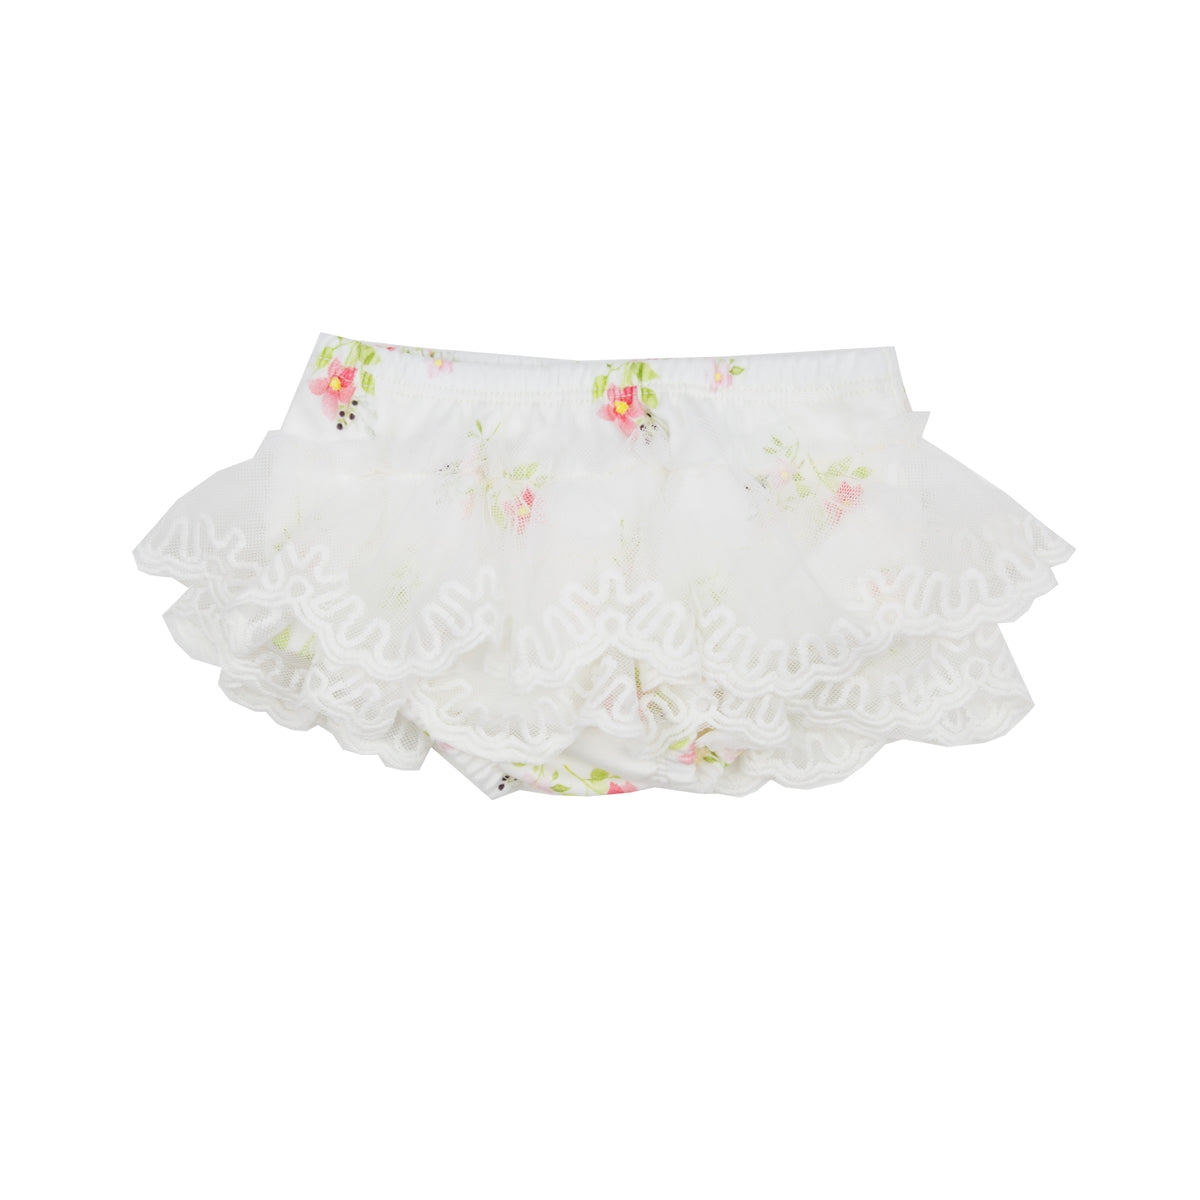 Haute Baby Diaper Cover Tiny Petals HB_STP06 - Nenes Lullaby Boutique Inc